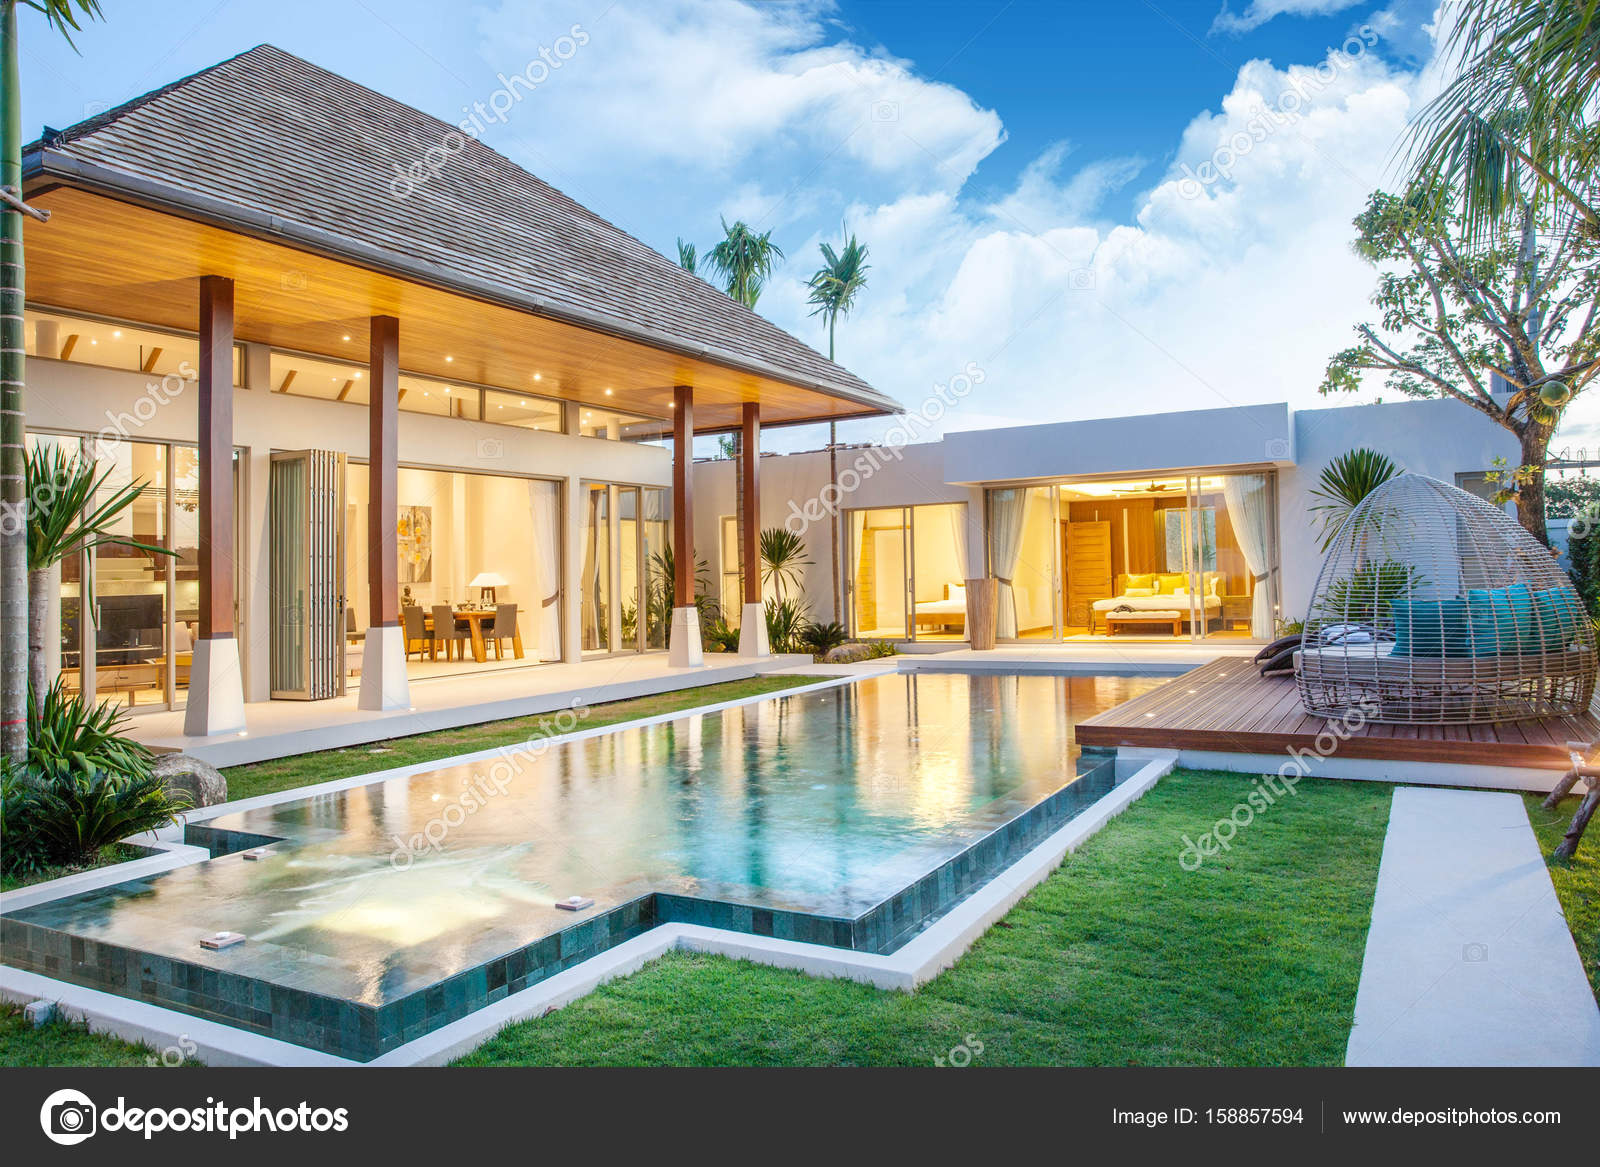 Interior and exterior design of pool villa which features for Pool design villa